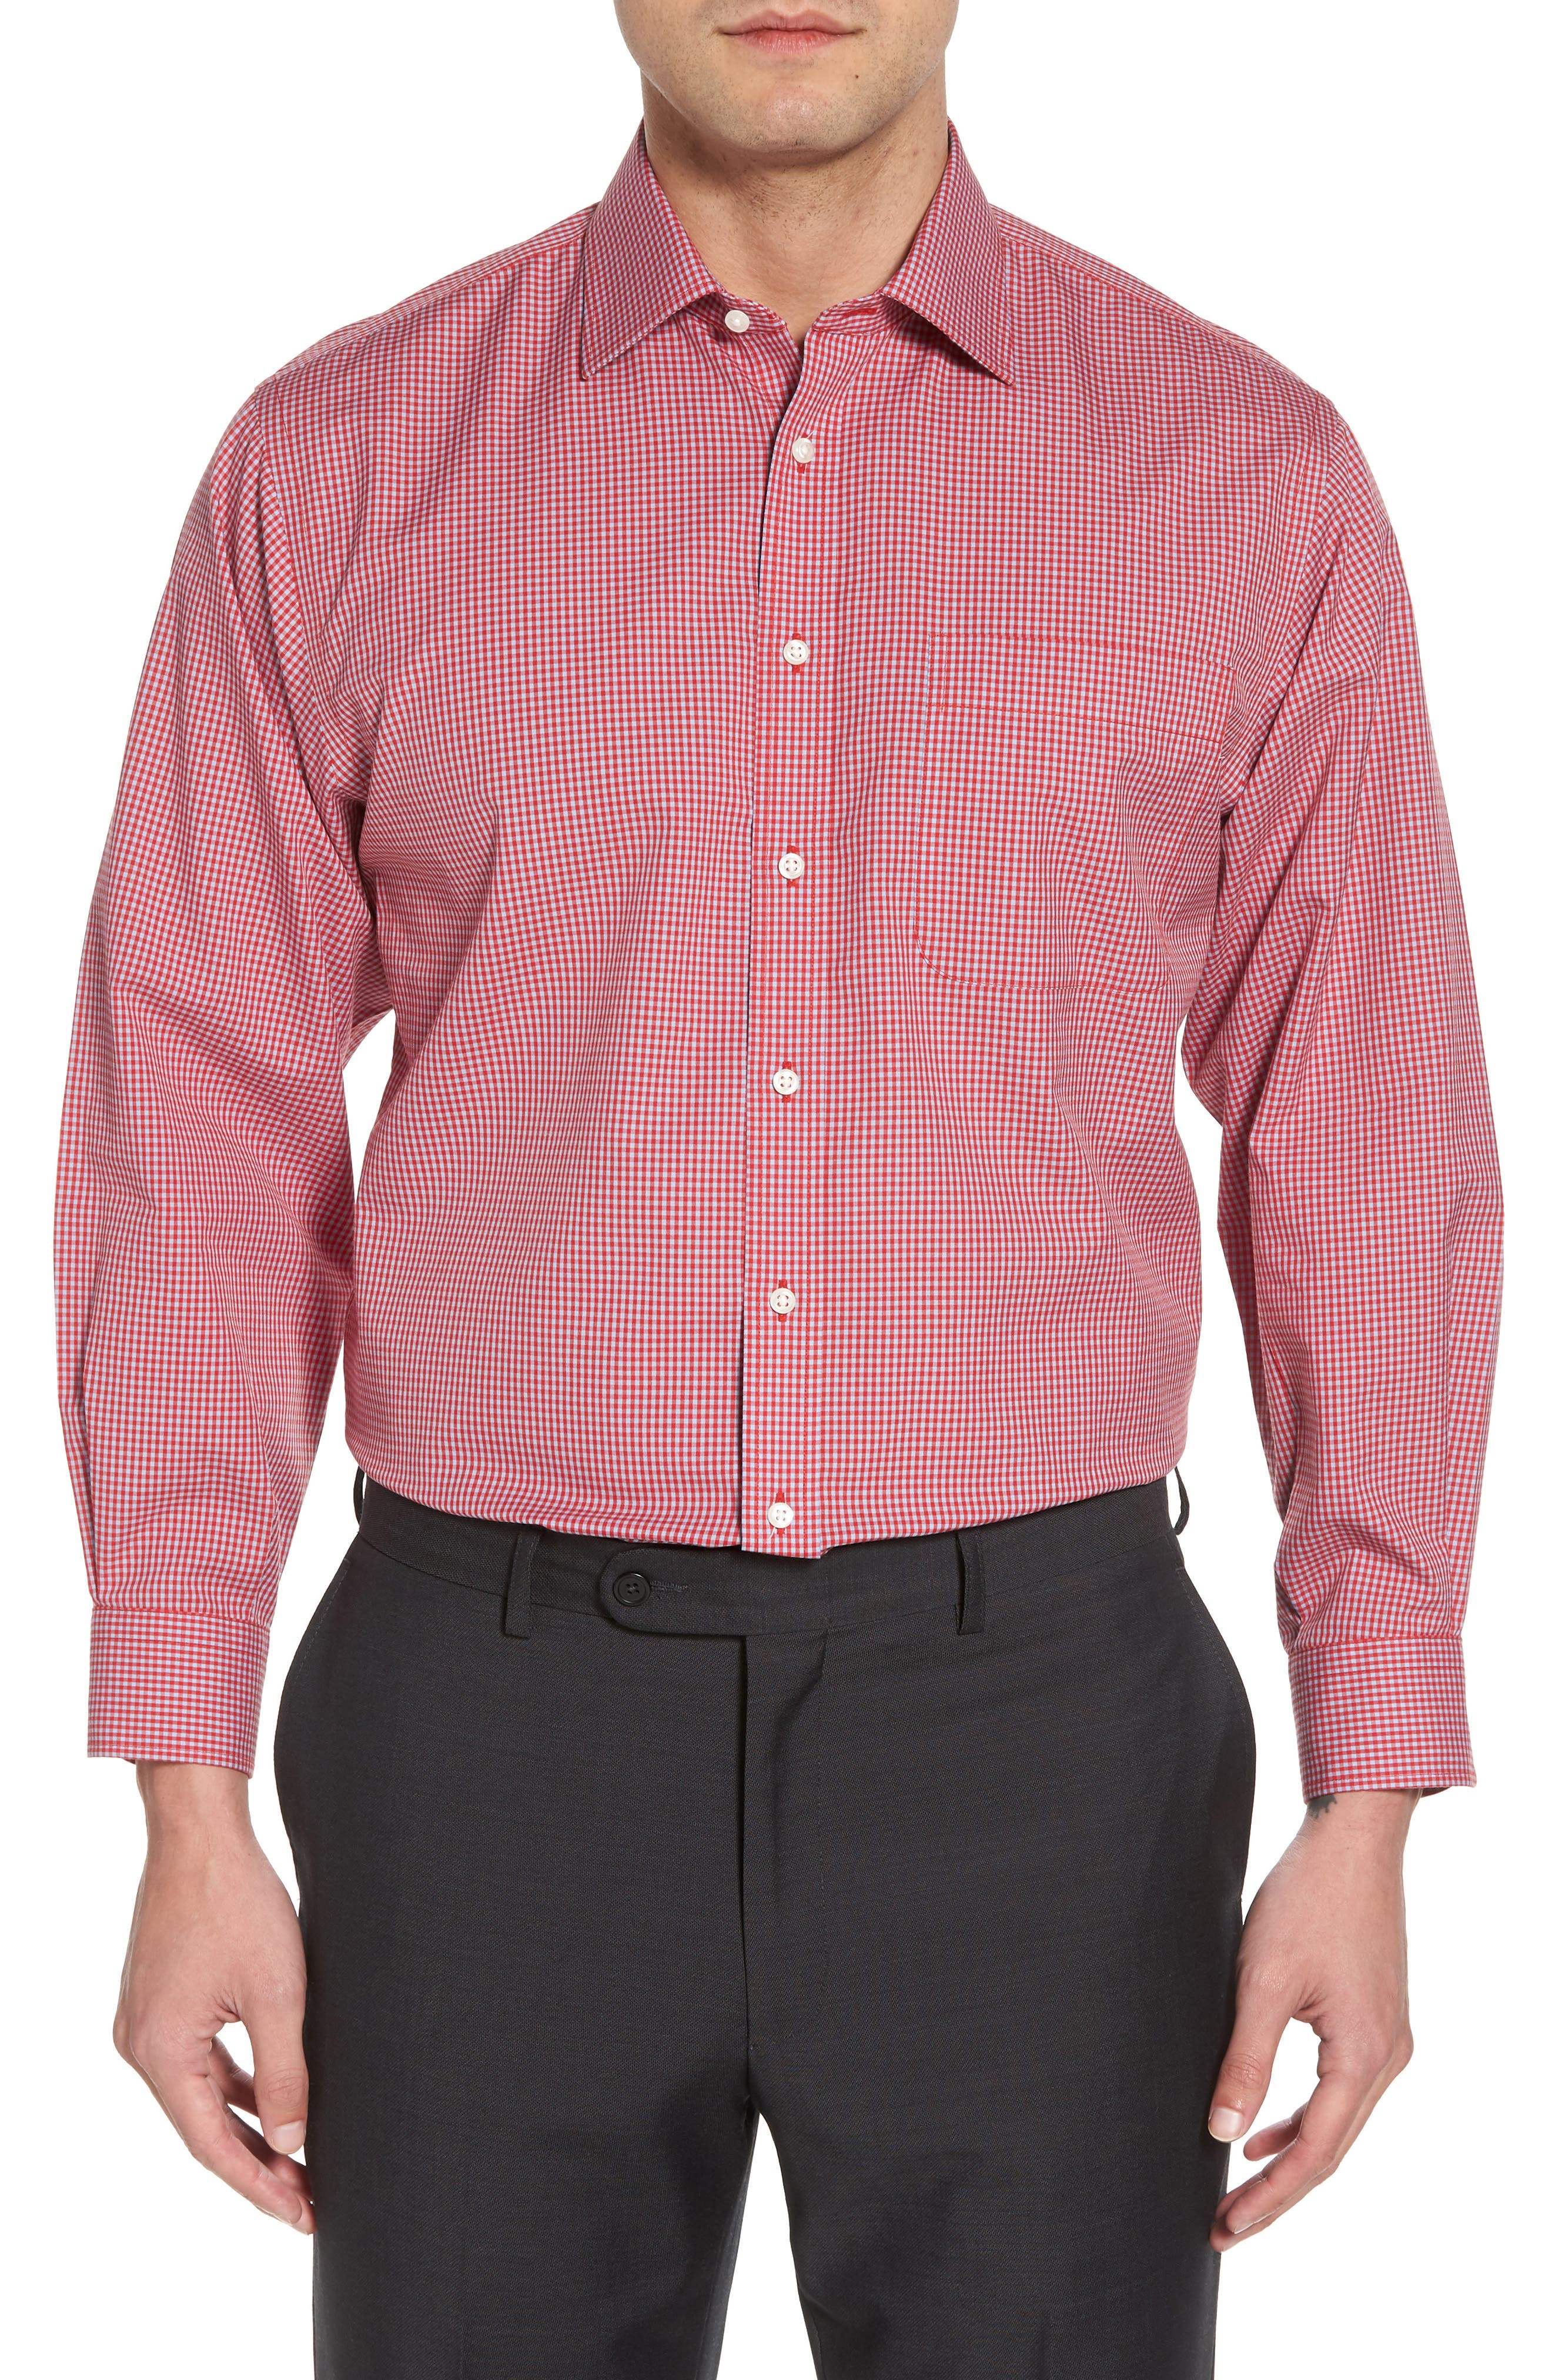 Smartcare Classic Fit Check Dress Shirt,                             Main thumbnail 4, color,